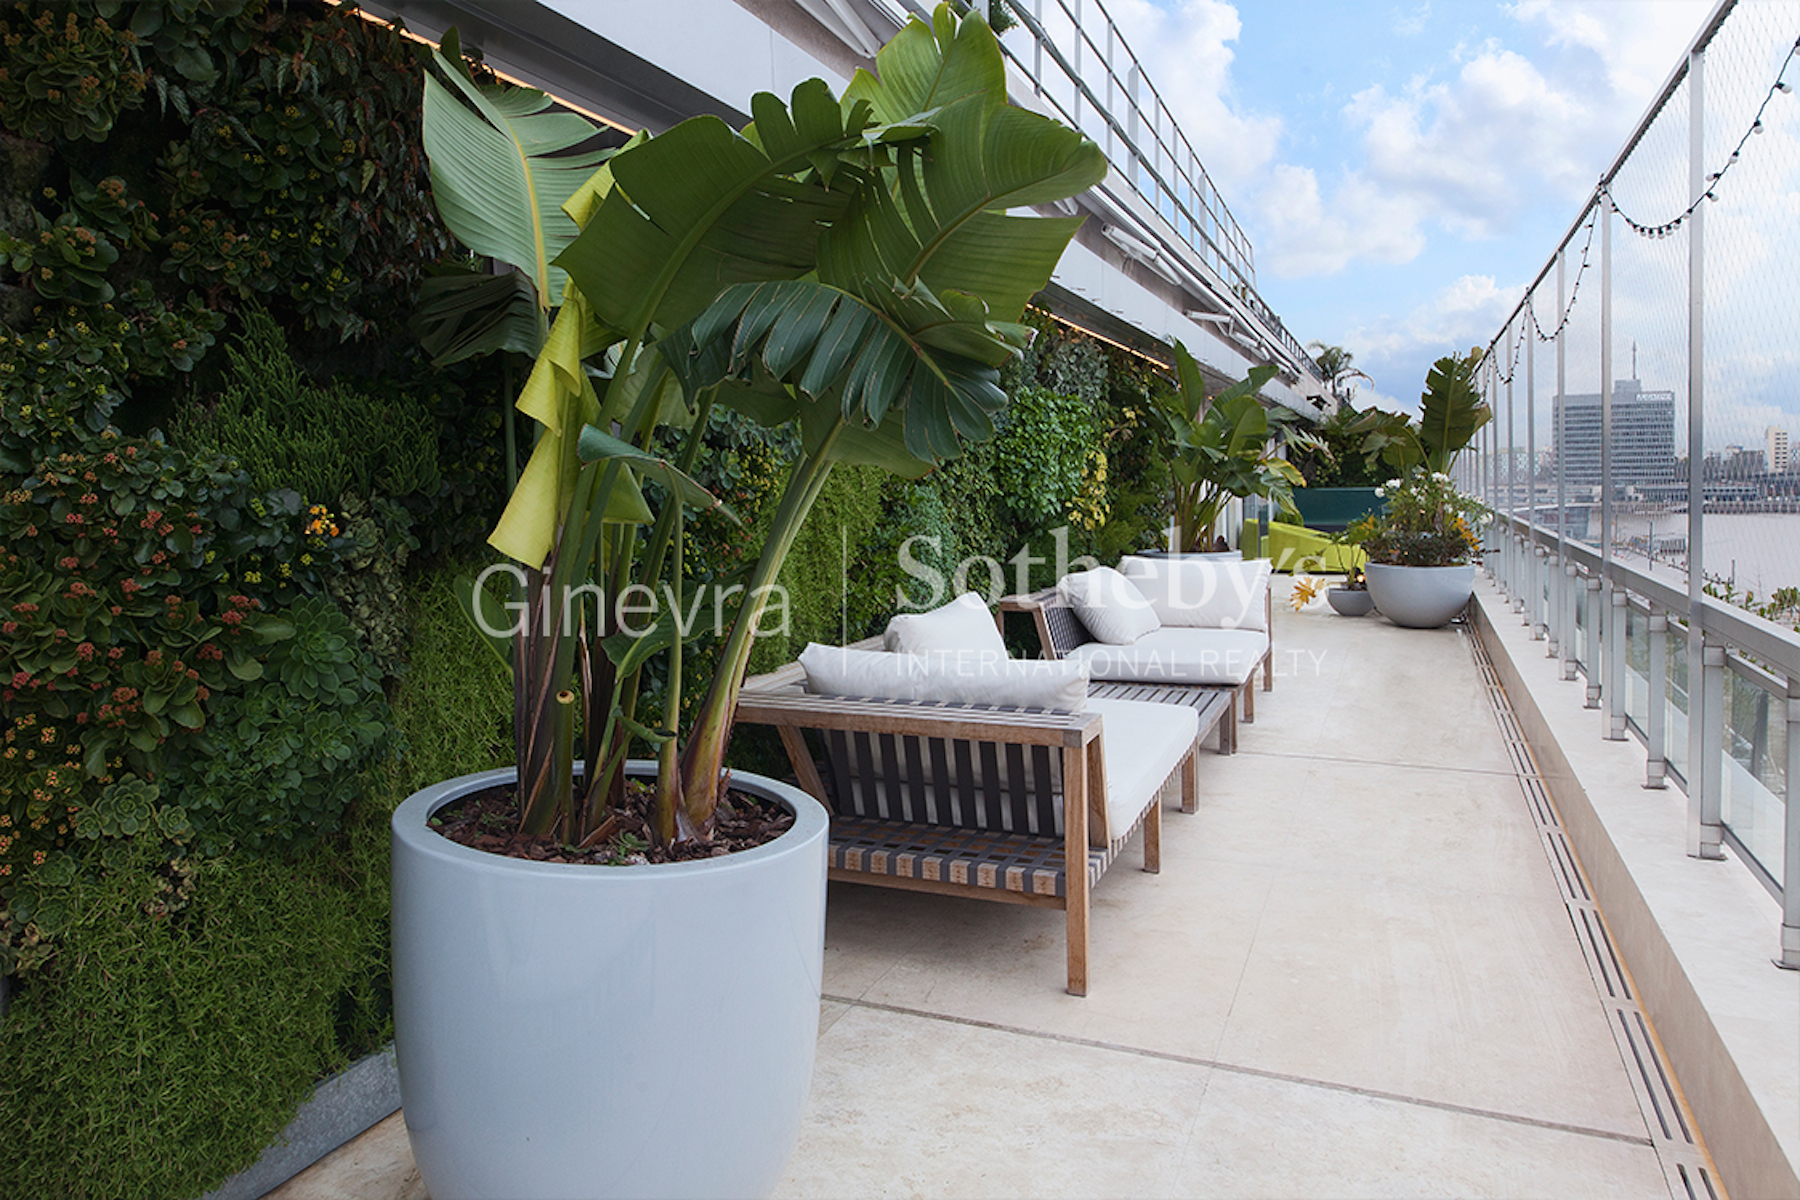 Additional photo for property listing at Exquisite Duplex for Sale - Cruceros Building Olga Cossettini Capital Federal, Buenos Aires 1107 Argentina